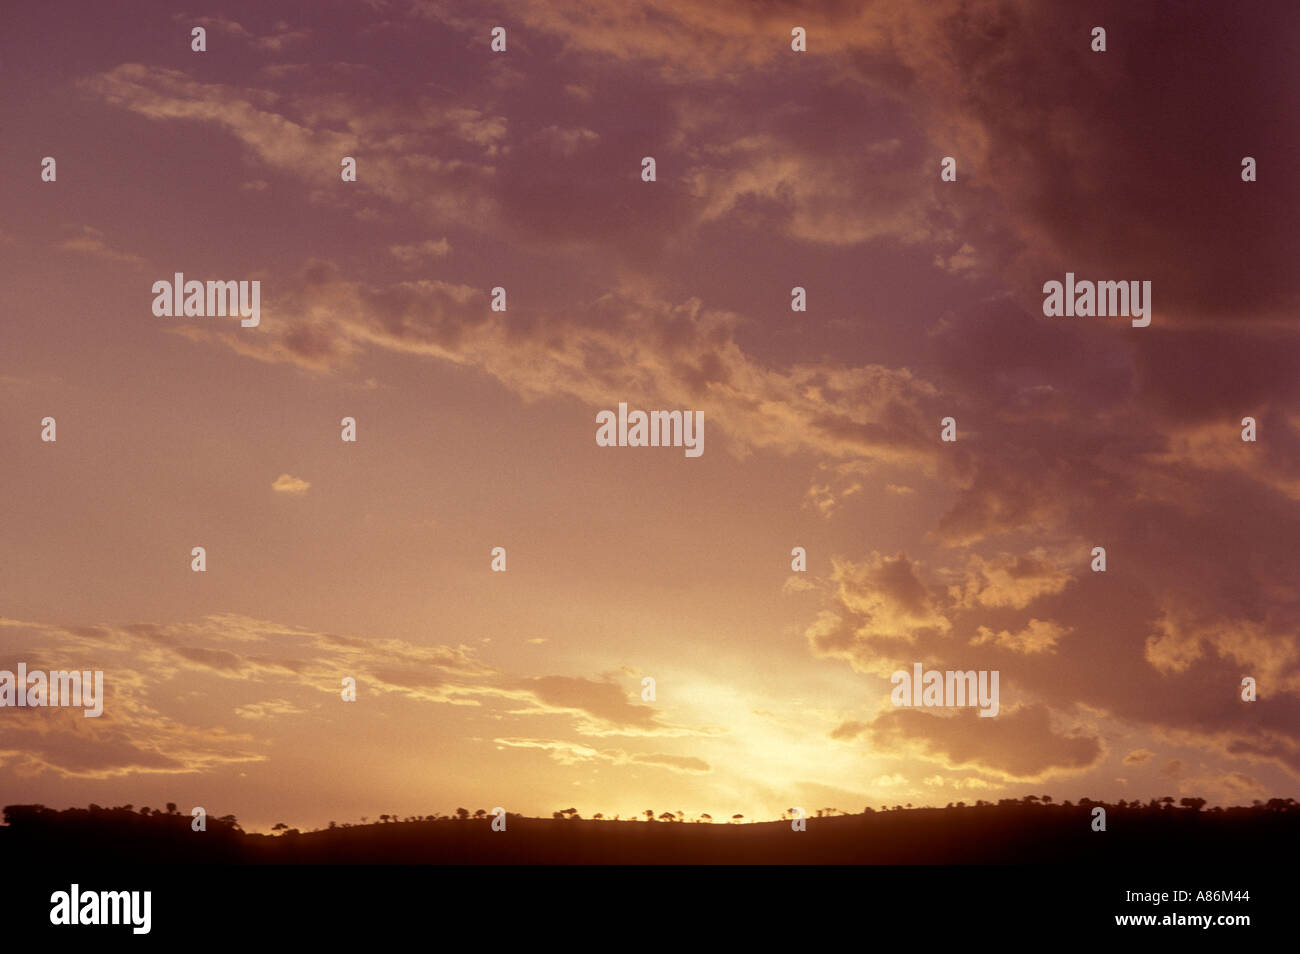 Sky with dawn glow over Africa - Stock Image